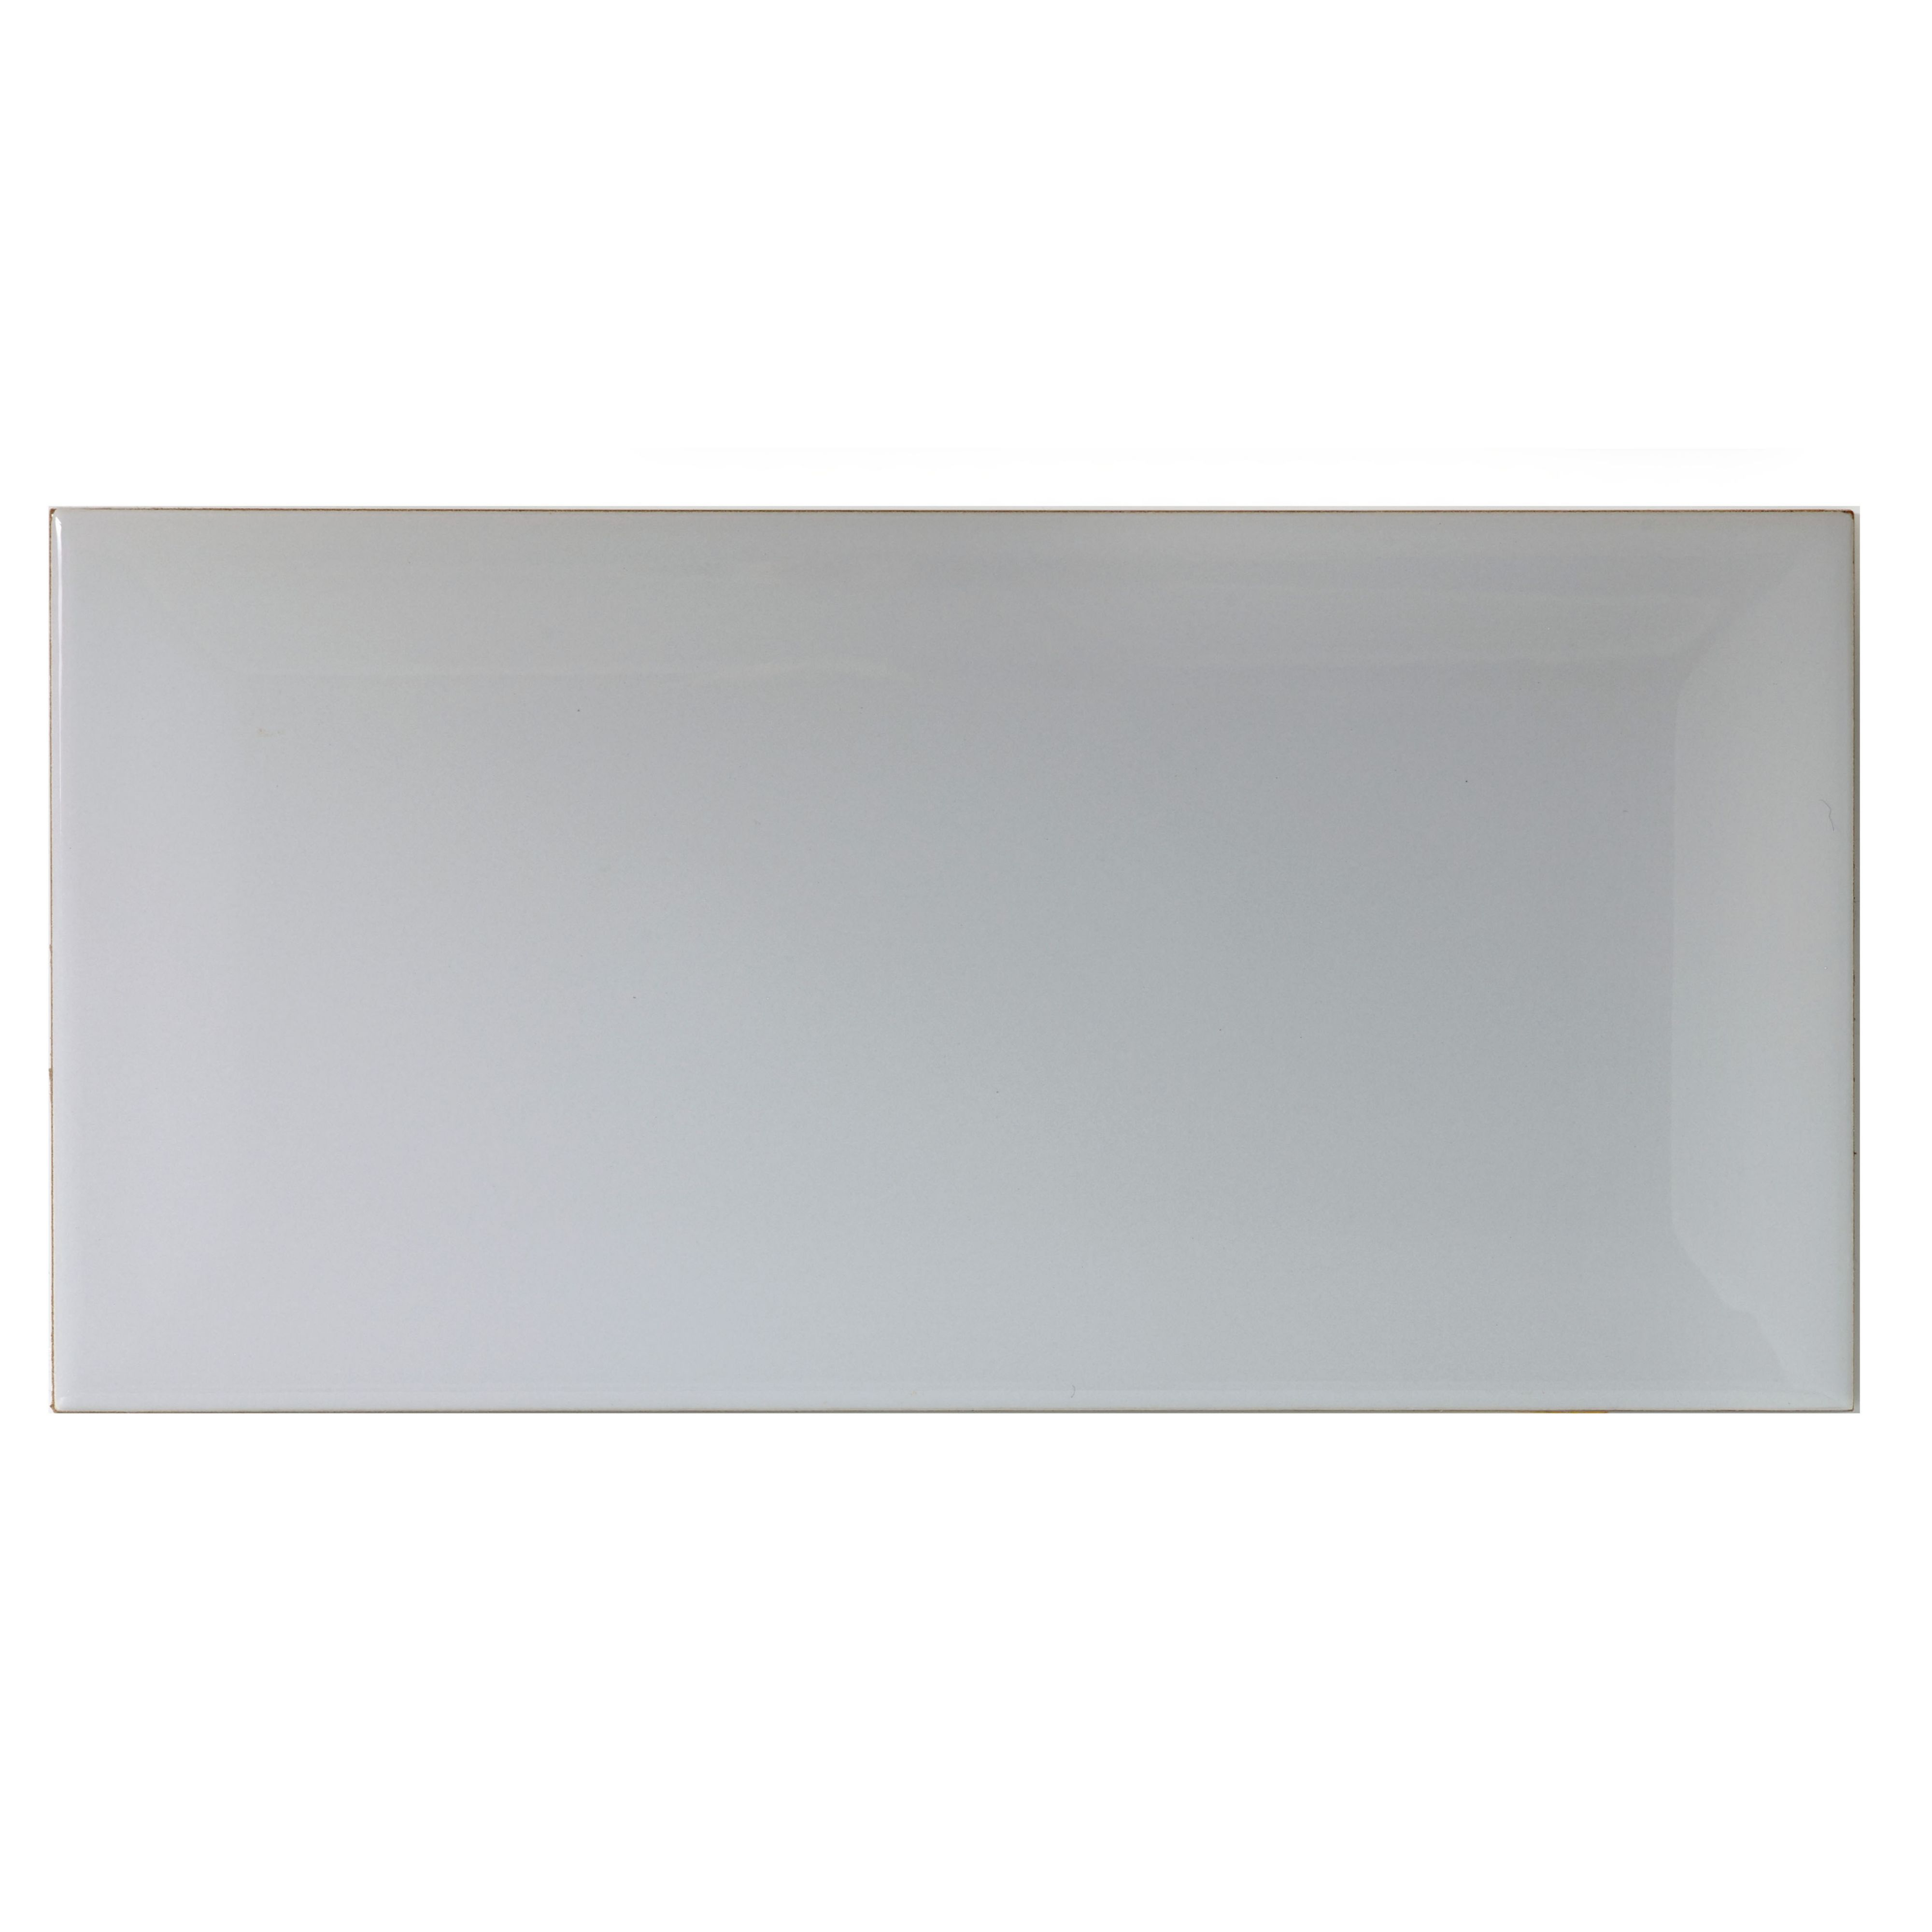 Grey Gloss Bevelled Edge Ceramic Wall Tile, Pack Of 50, (l)200mm (w)100mm